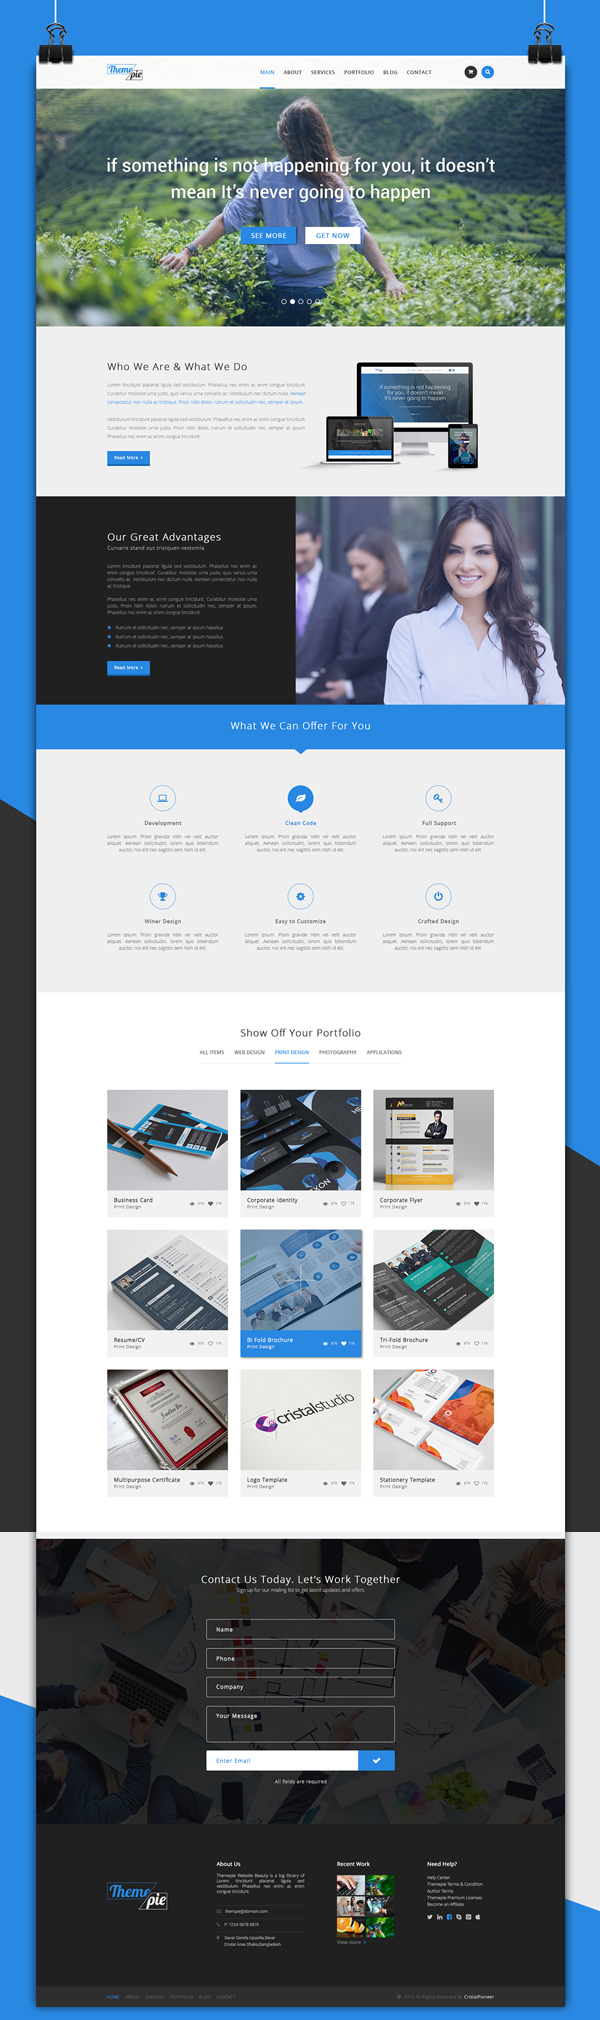 Themepie - Free One Page PSD Web Template